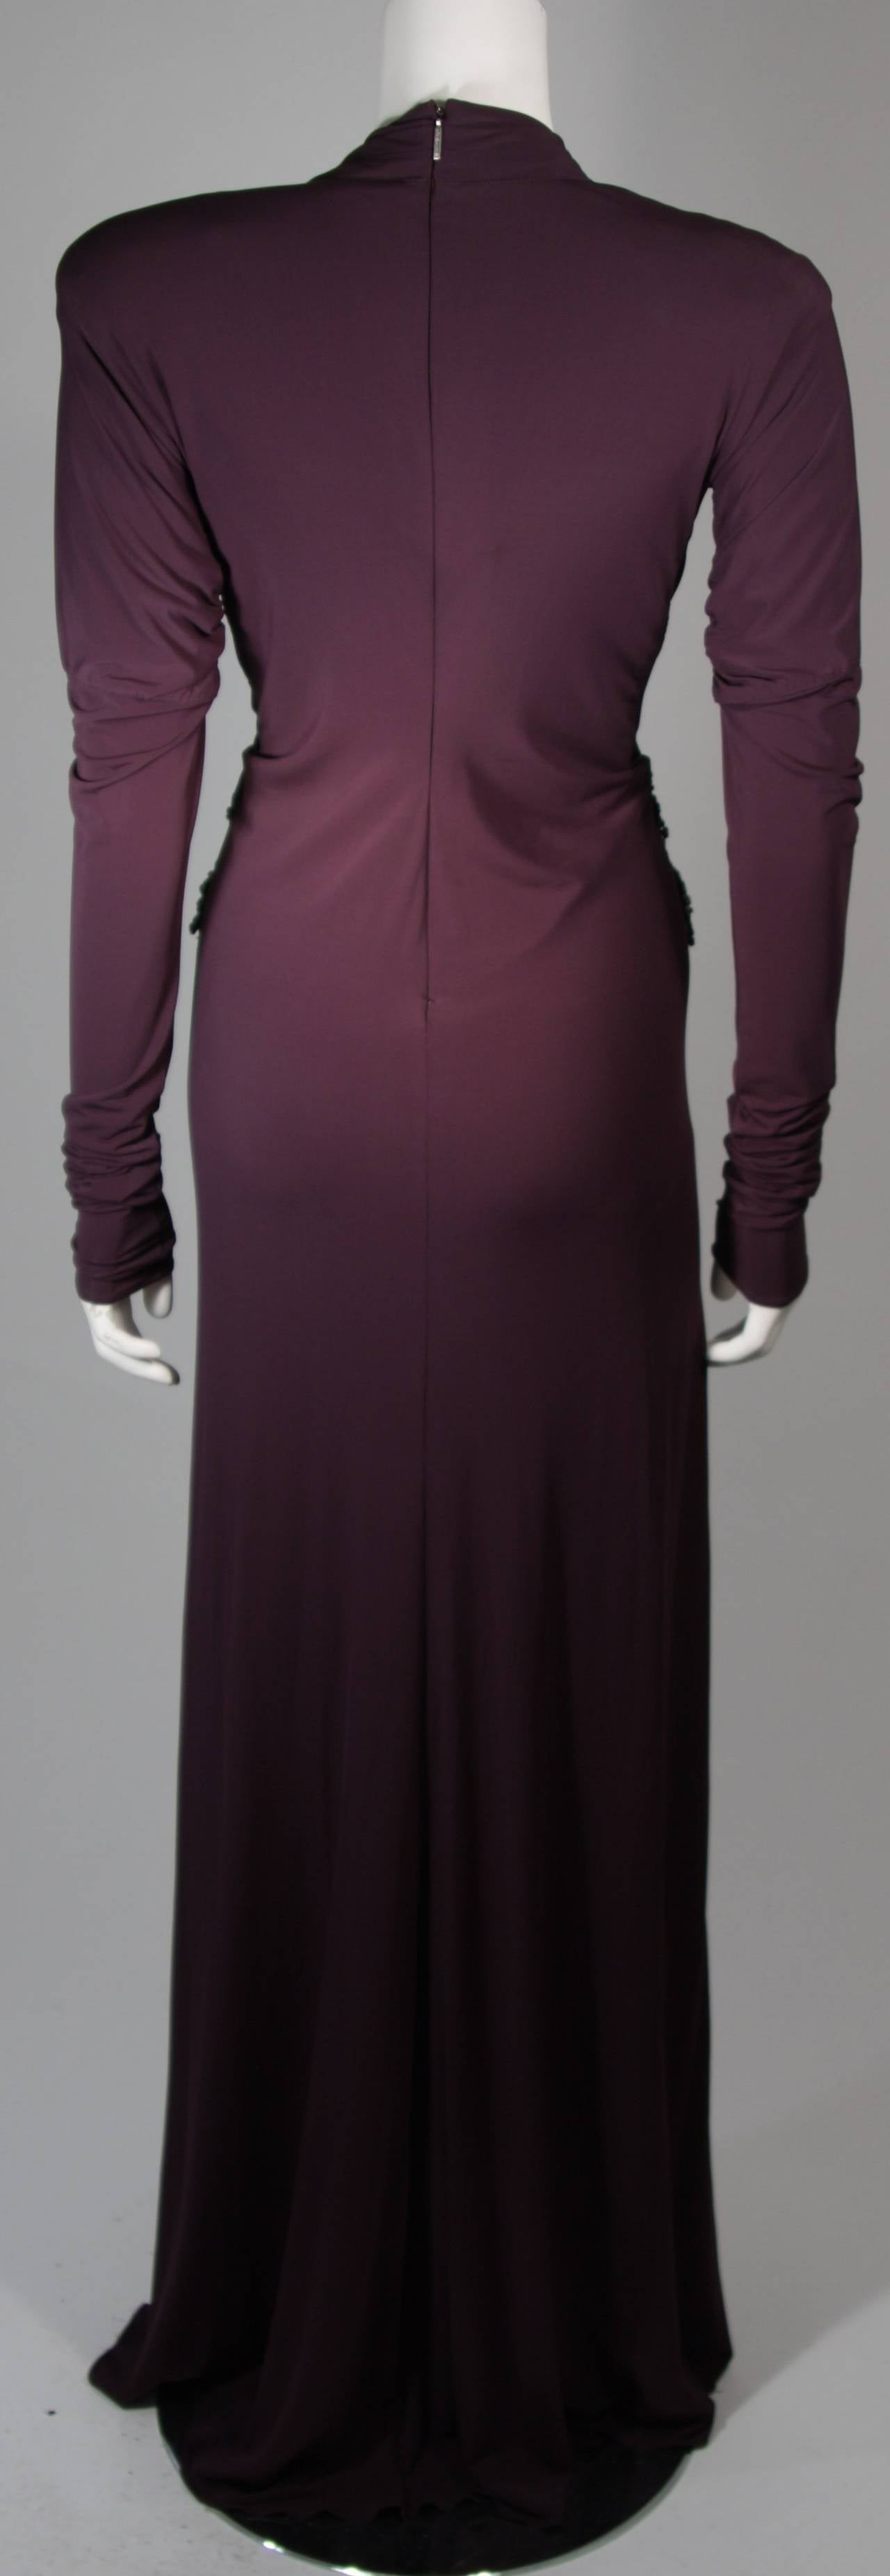 Roberto Cavalli Aubergine Long Sleeve Jersey Gown with Embellishments Size 40 9